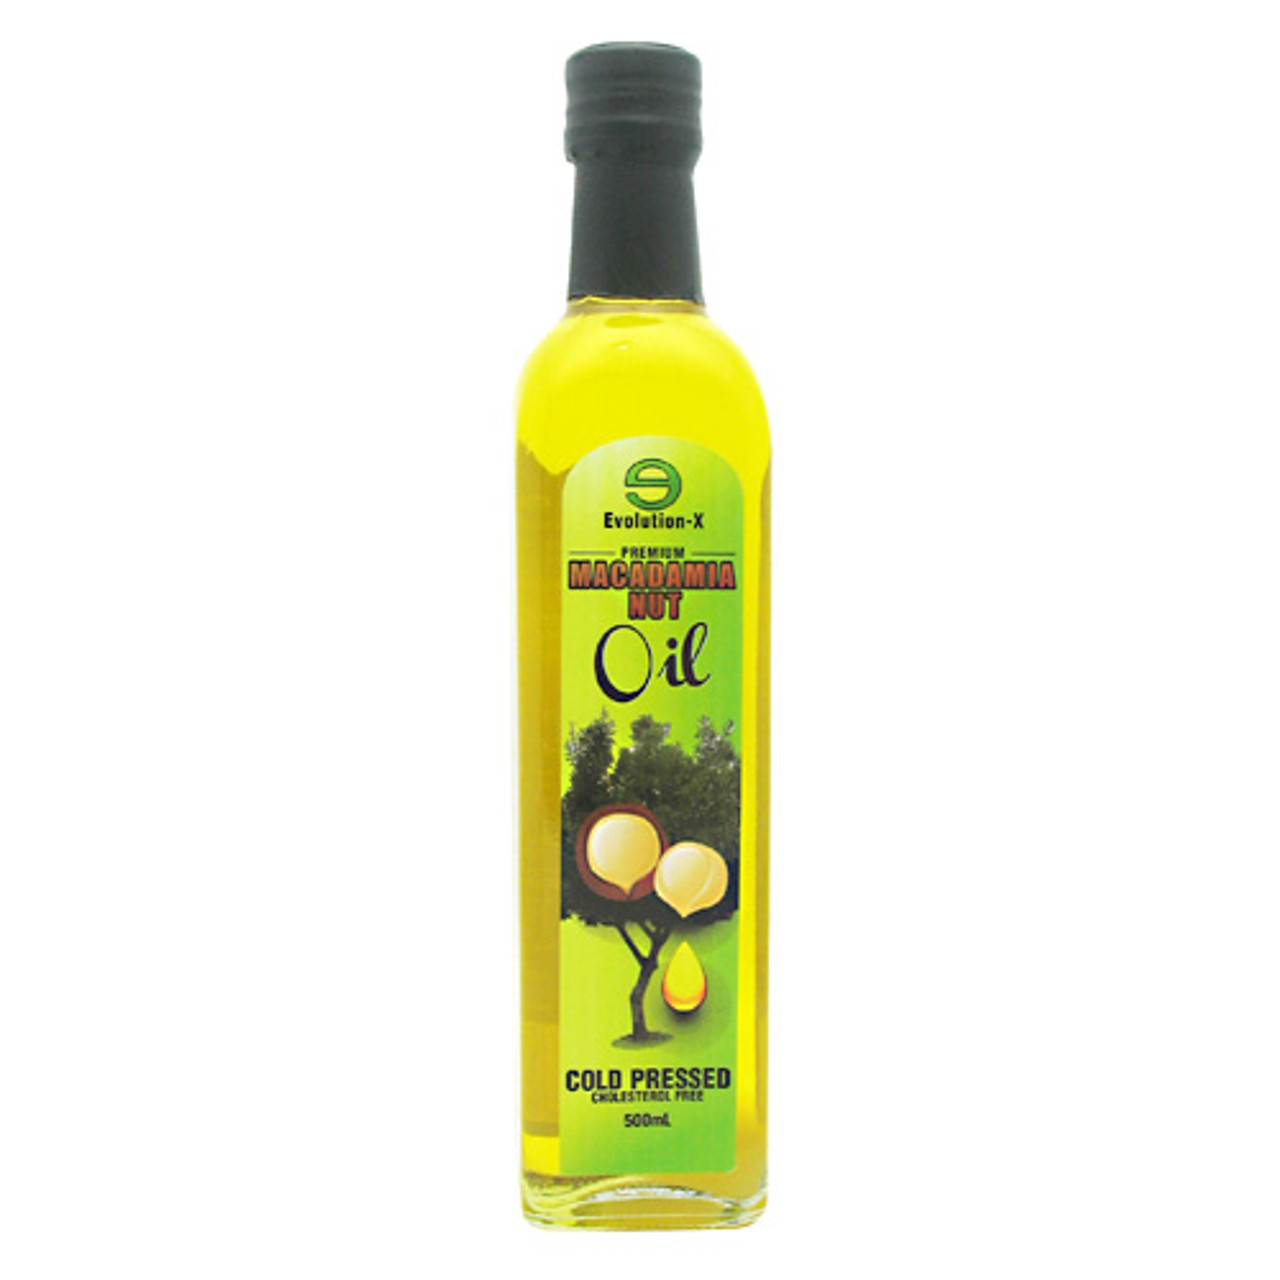 Macadamia Nut Oil by Species Nutrition